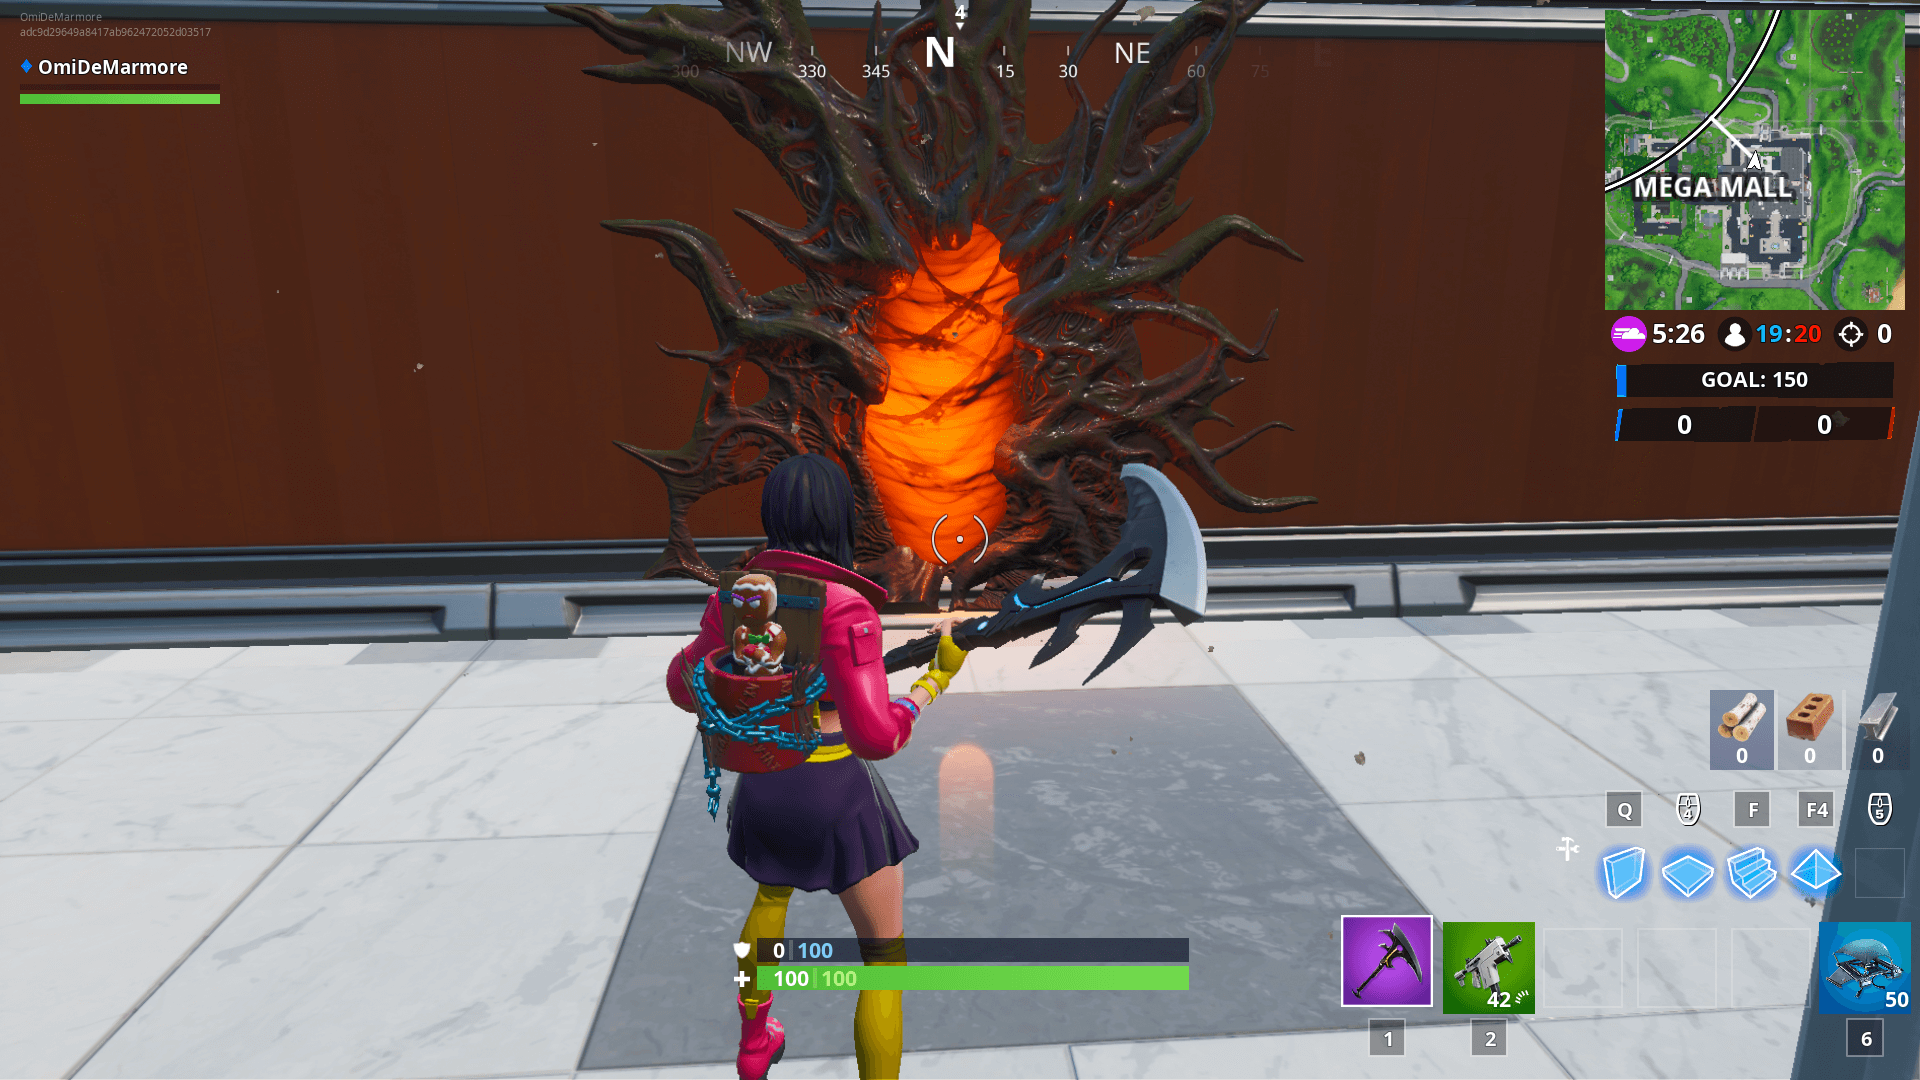 Stranger Things 3 Is Turning Fortnite Upside Down in New Crossover